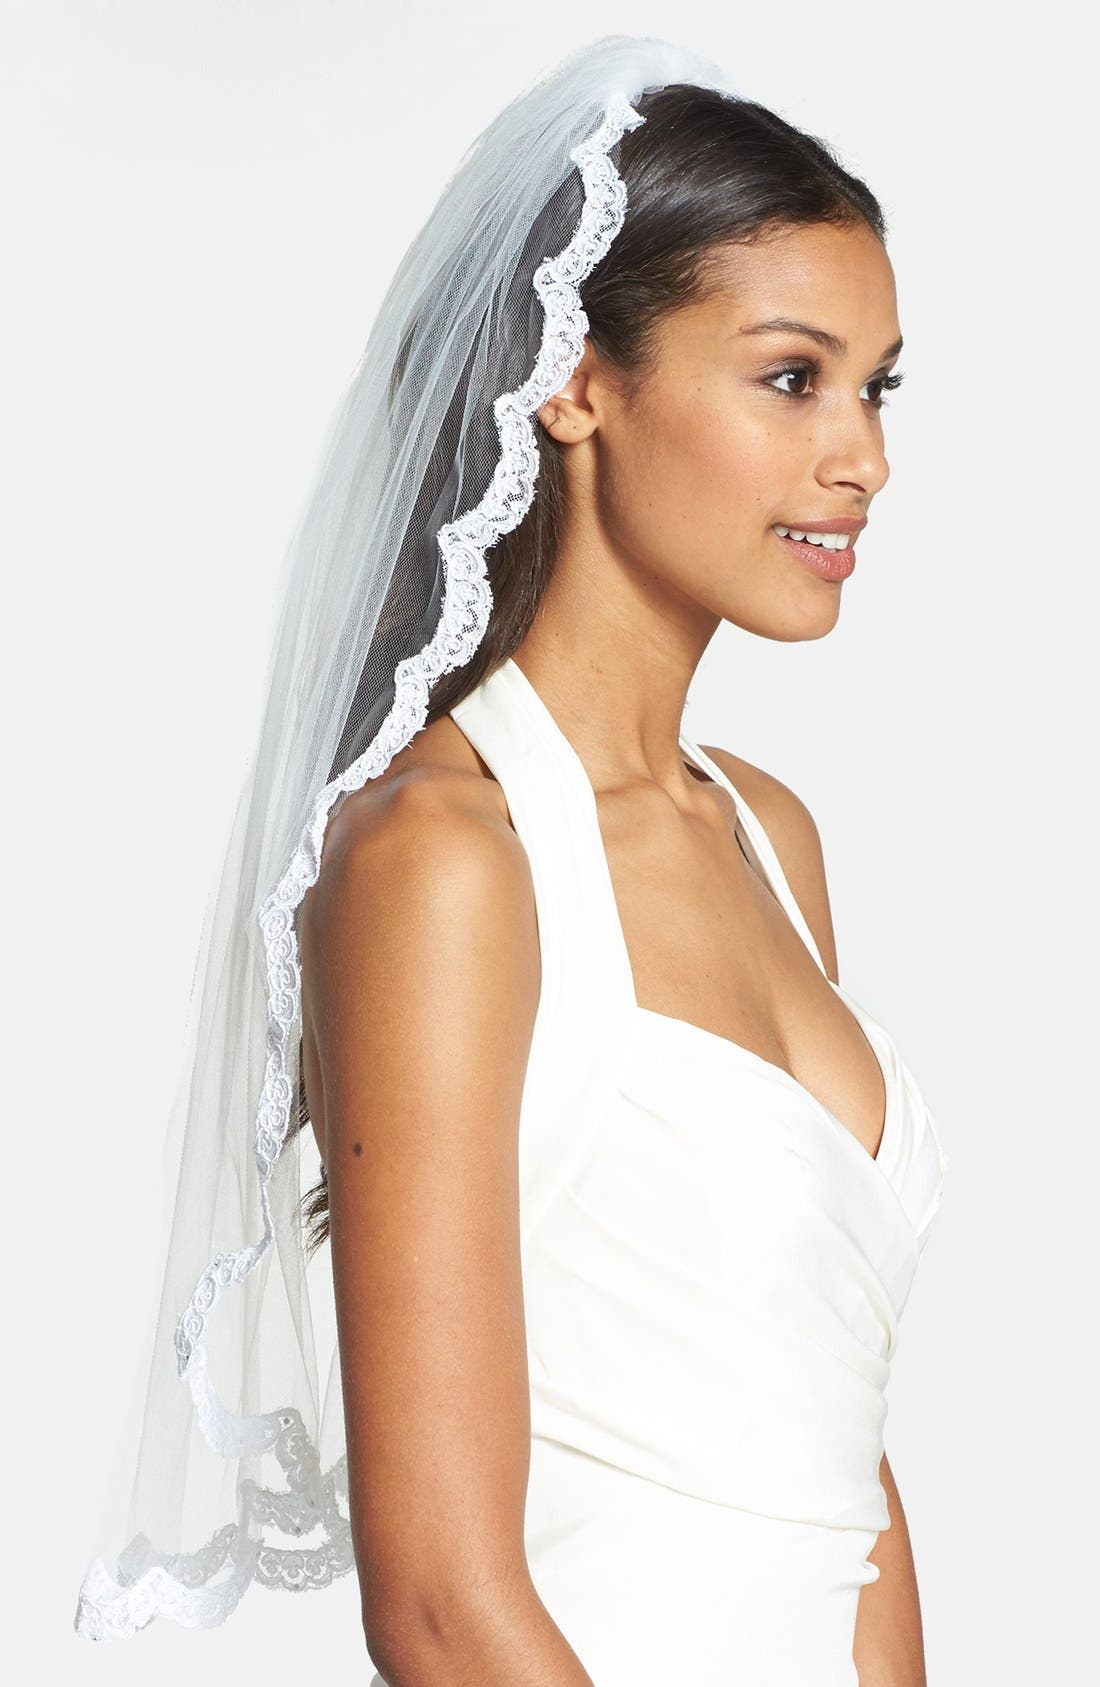 WEDDING BELLES NEW YORK Lola - Swarovski Crystal Lace Border Veil